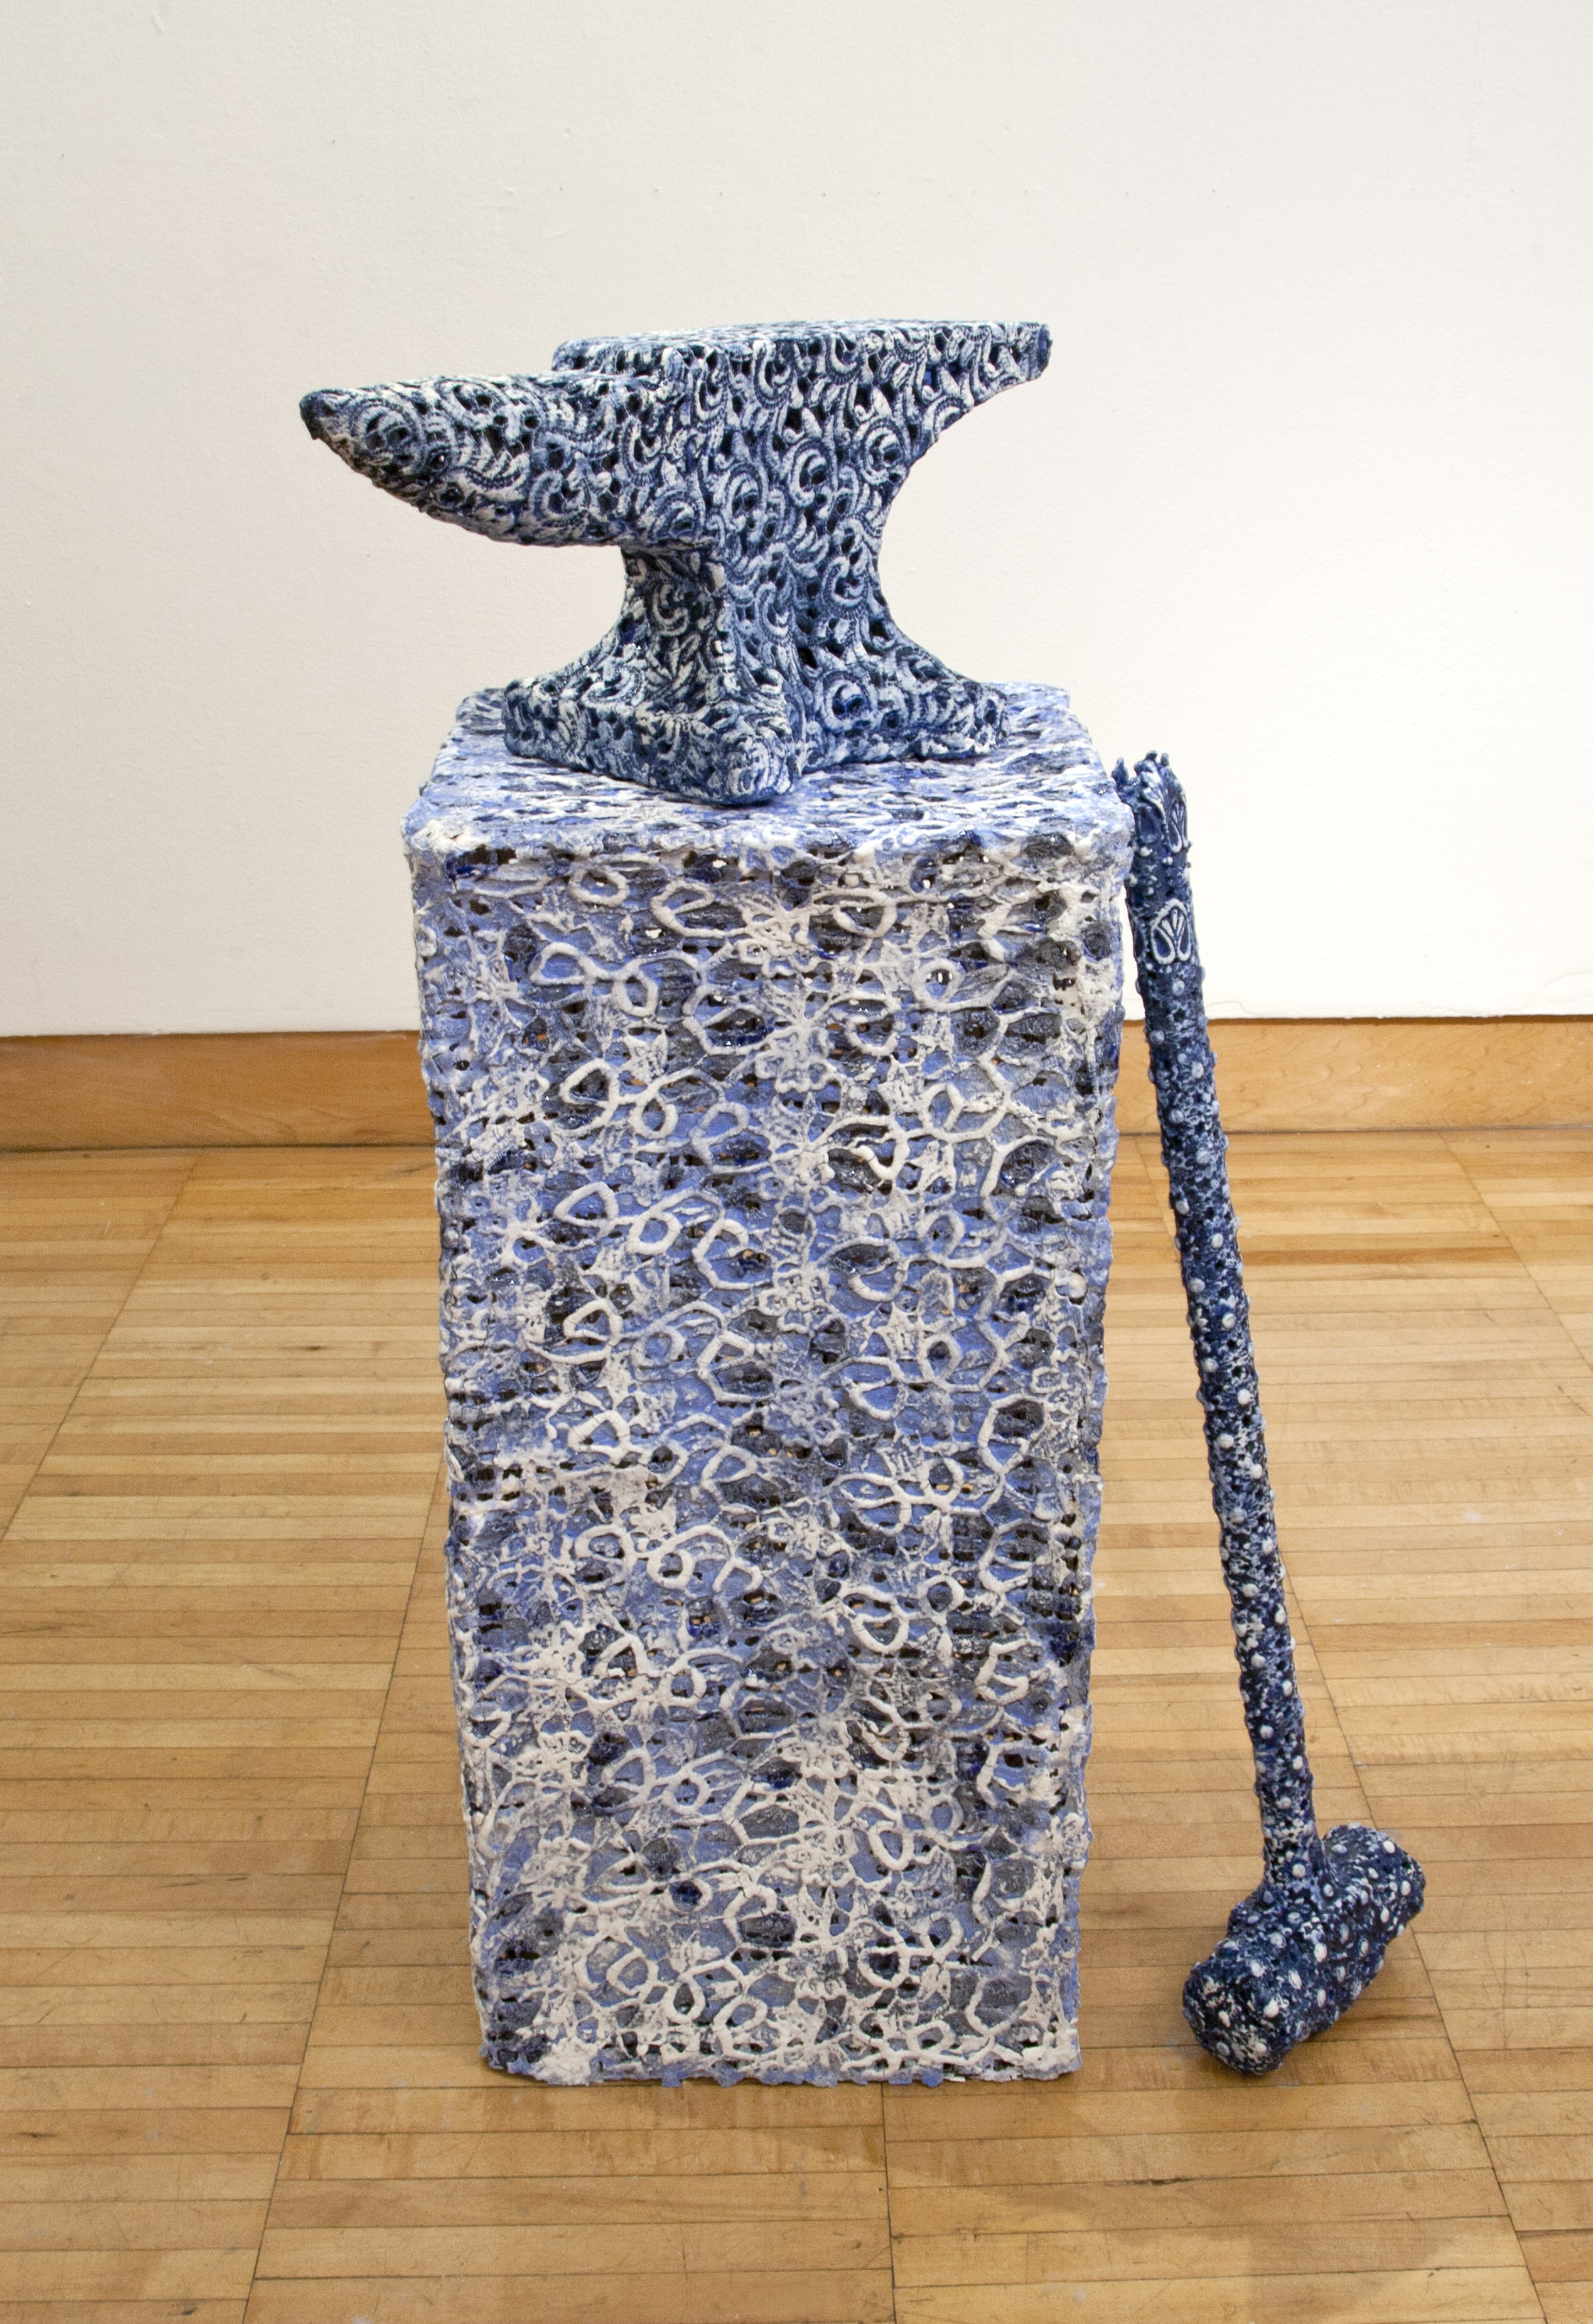 "Hammer and Anvil, 2013 Porcelain, glaze and underglaze. 18"" x 13"" x 32"""